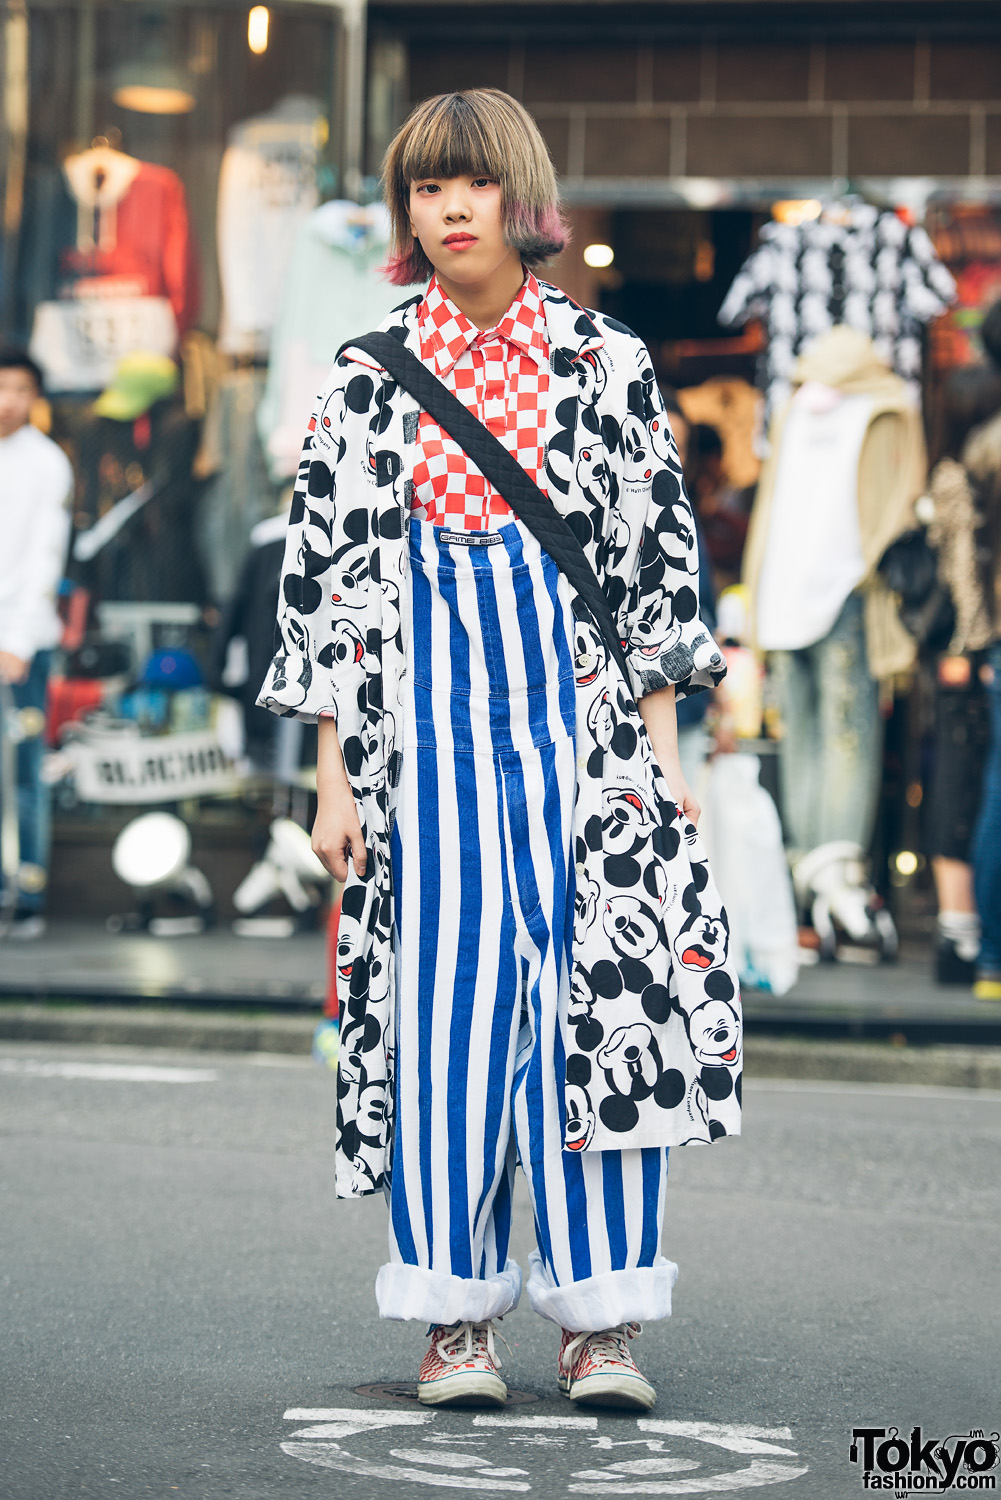 Checkerboard Hairstyle: Harajuku Girl In Mickey Mouse Coat, Checkerboard, Stripes